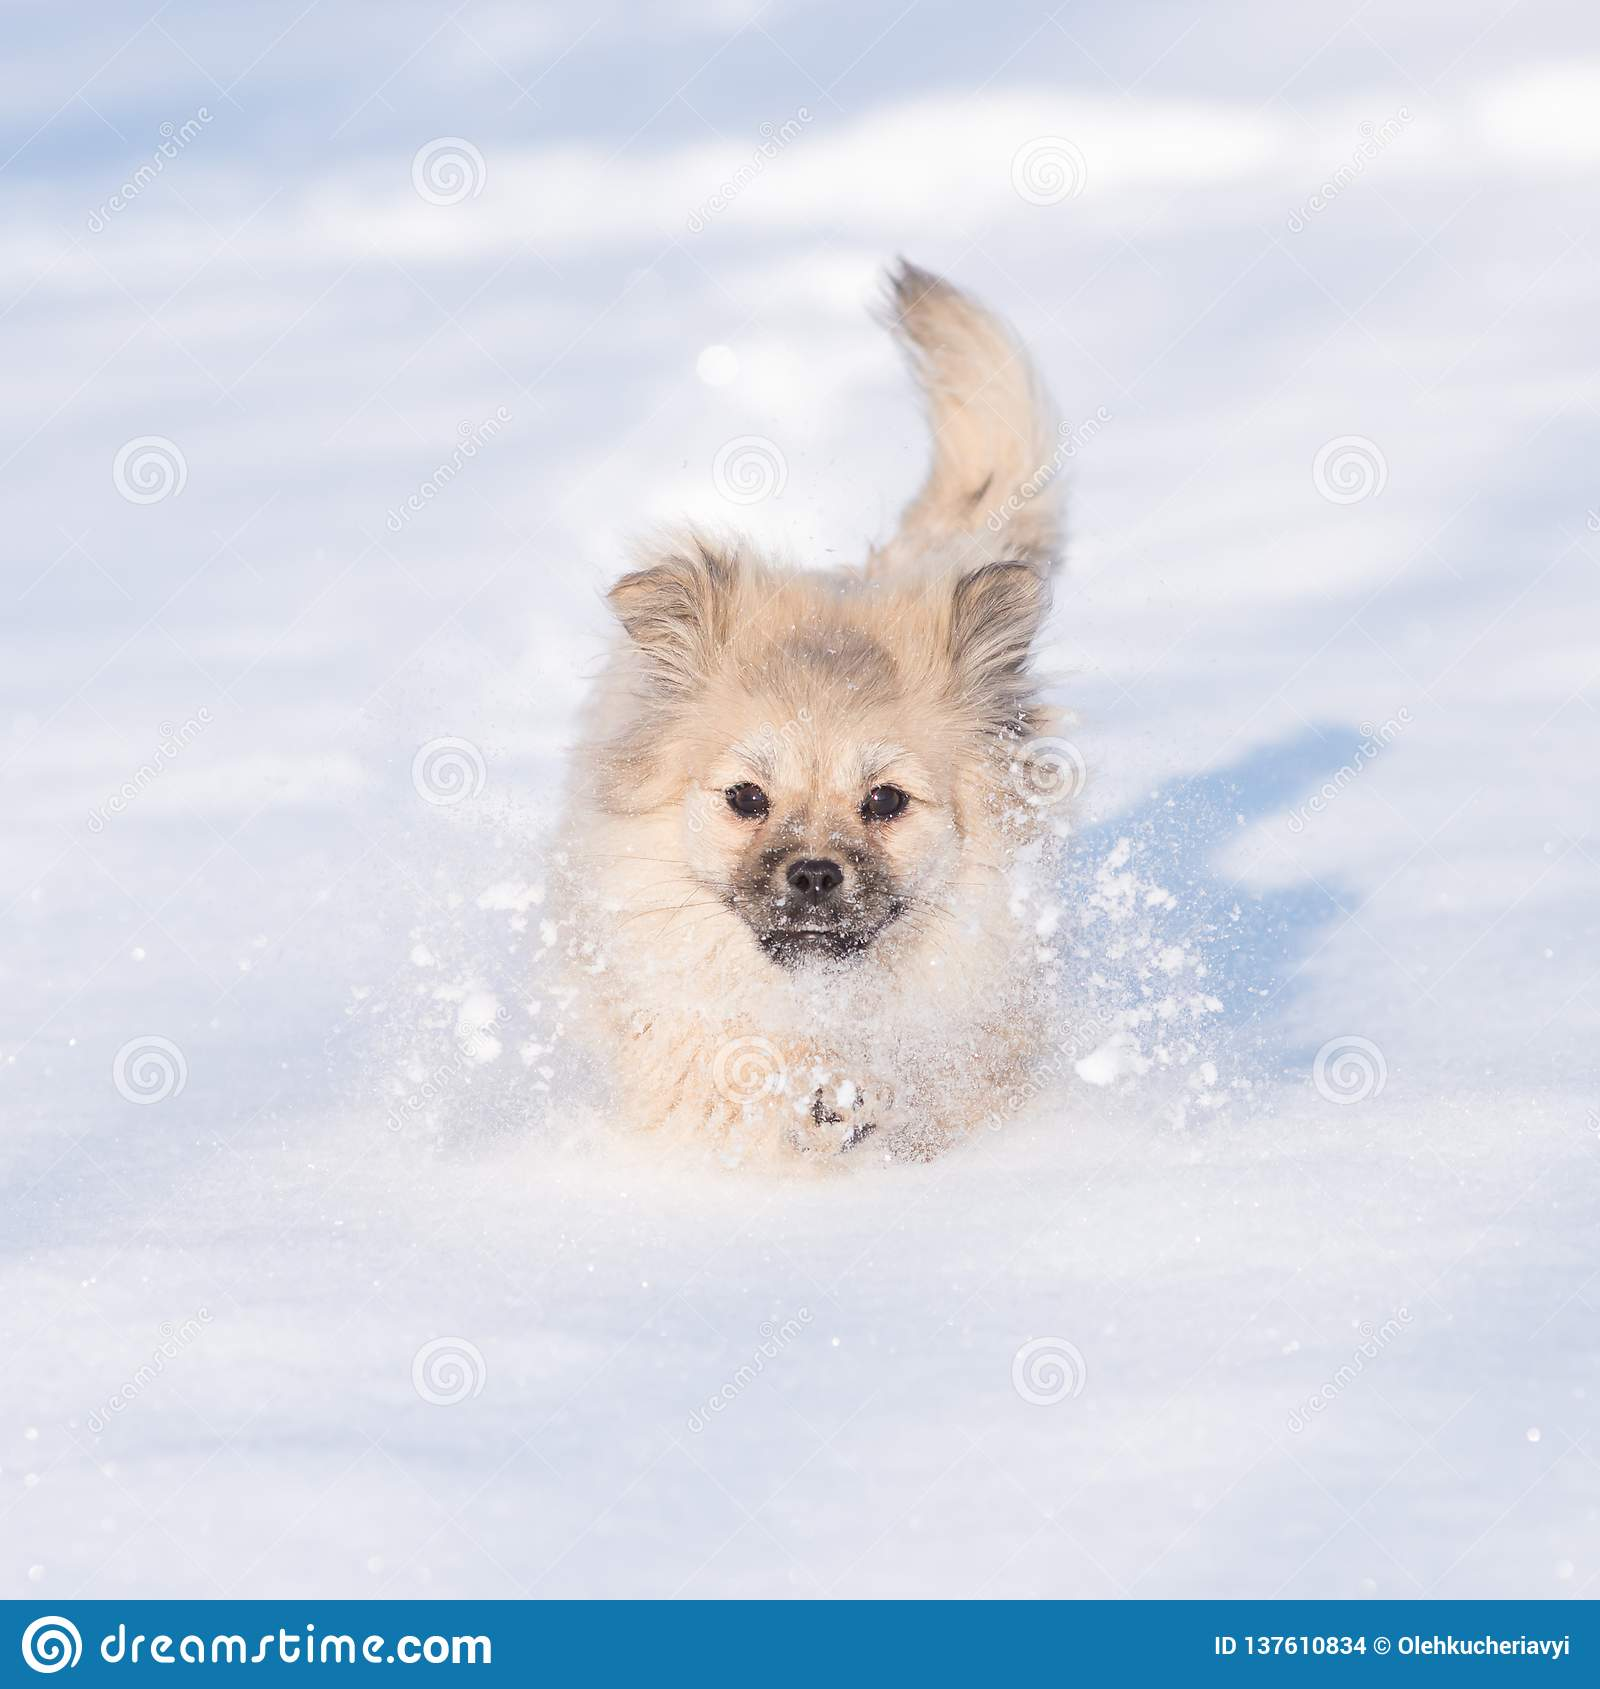 Puppy in the snow in the winter